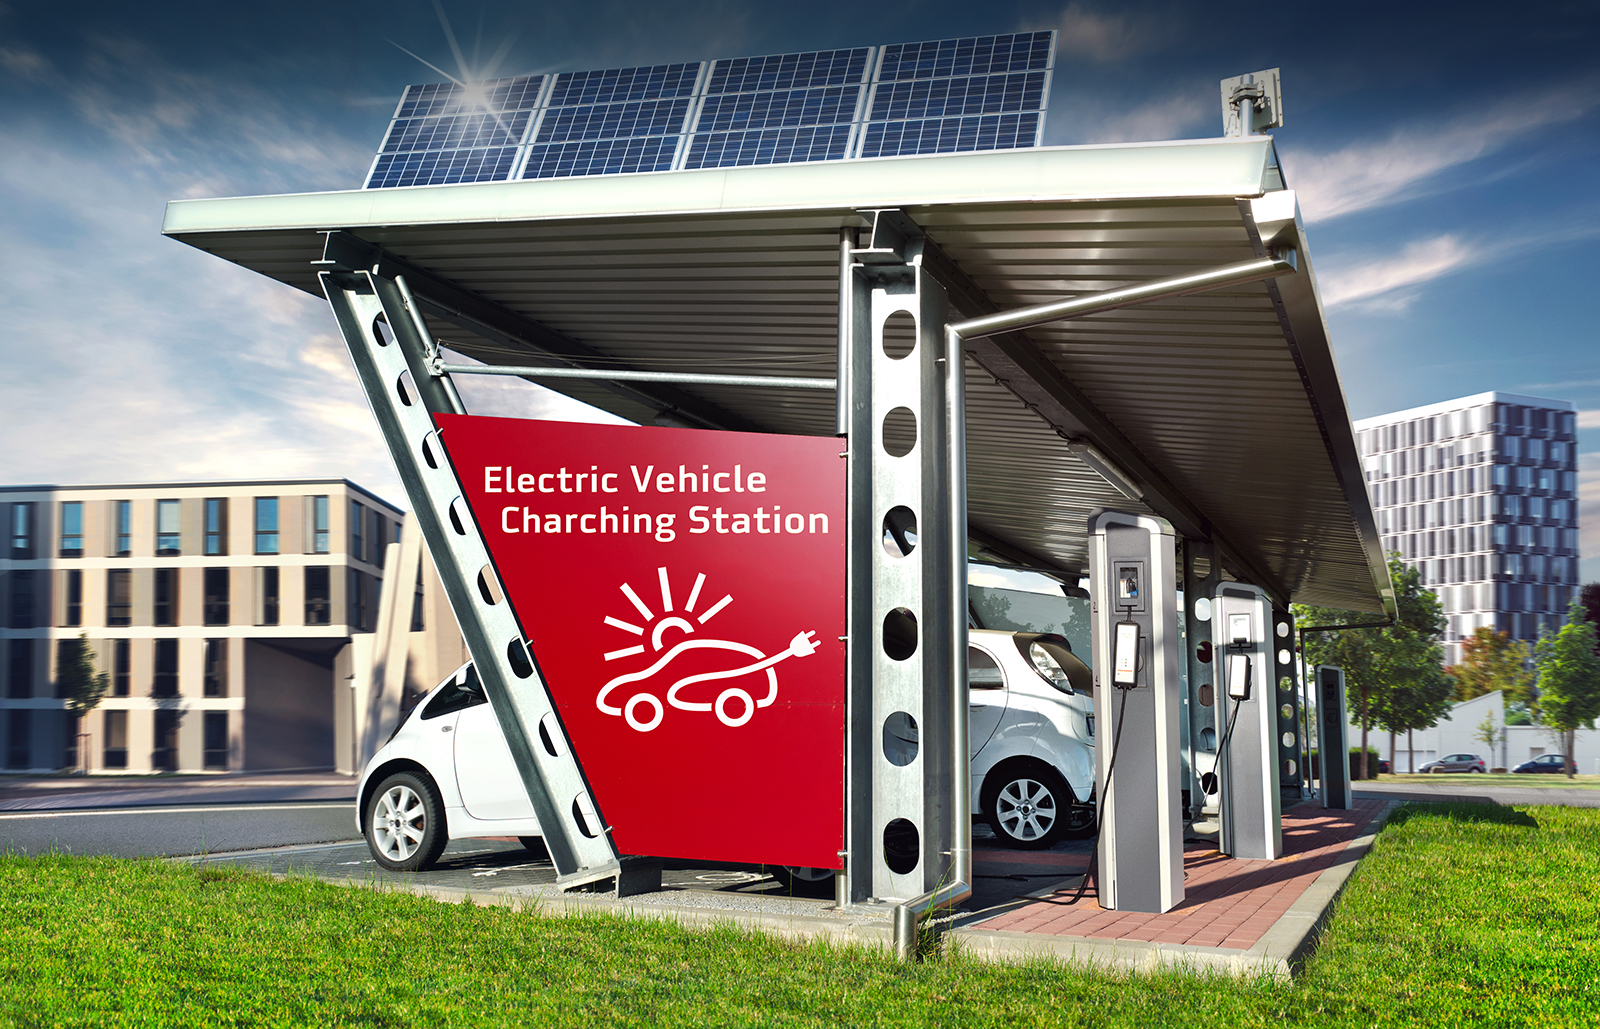 Get ready: Electrification is real and it's coming your way